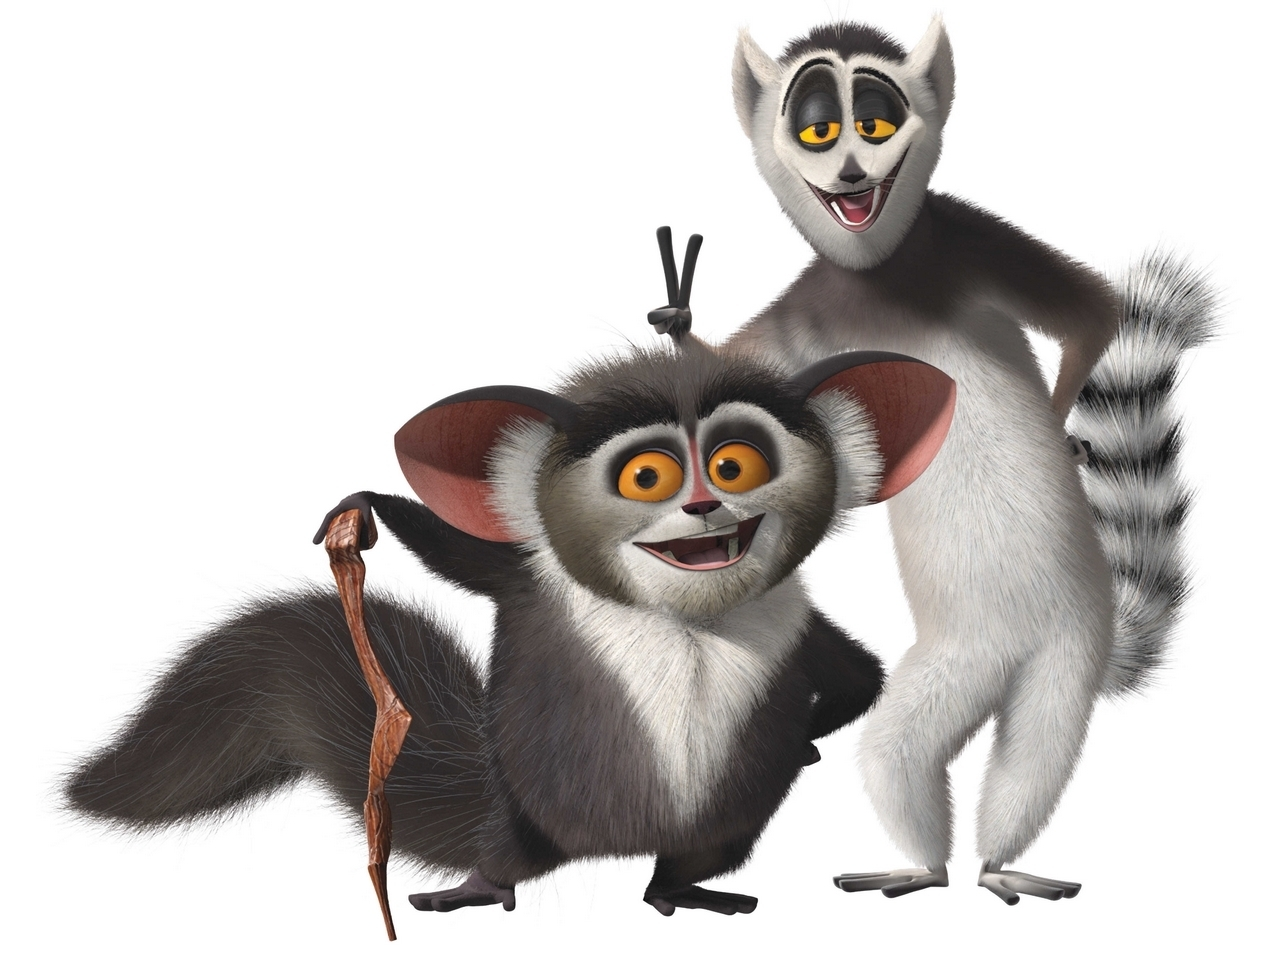 Madagascar wallpaper 1280x960 48442 - Madagascar wallpaper ...